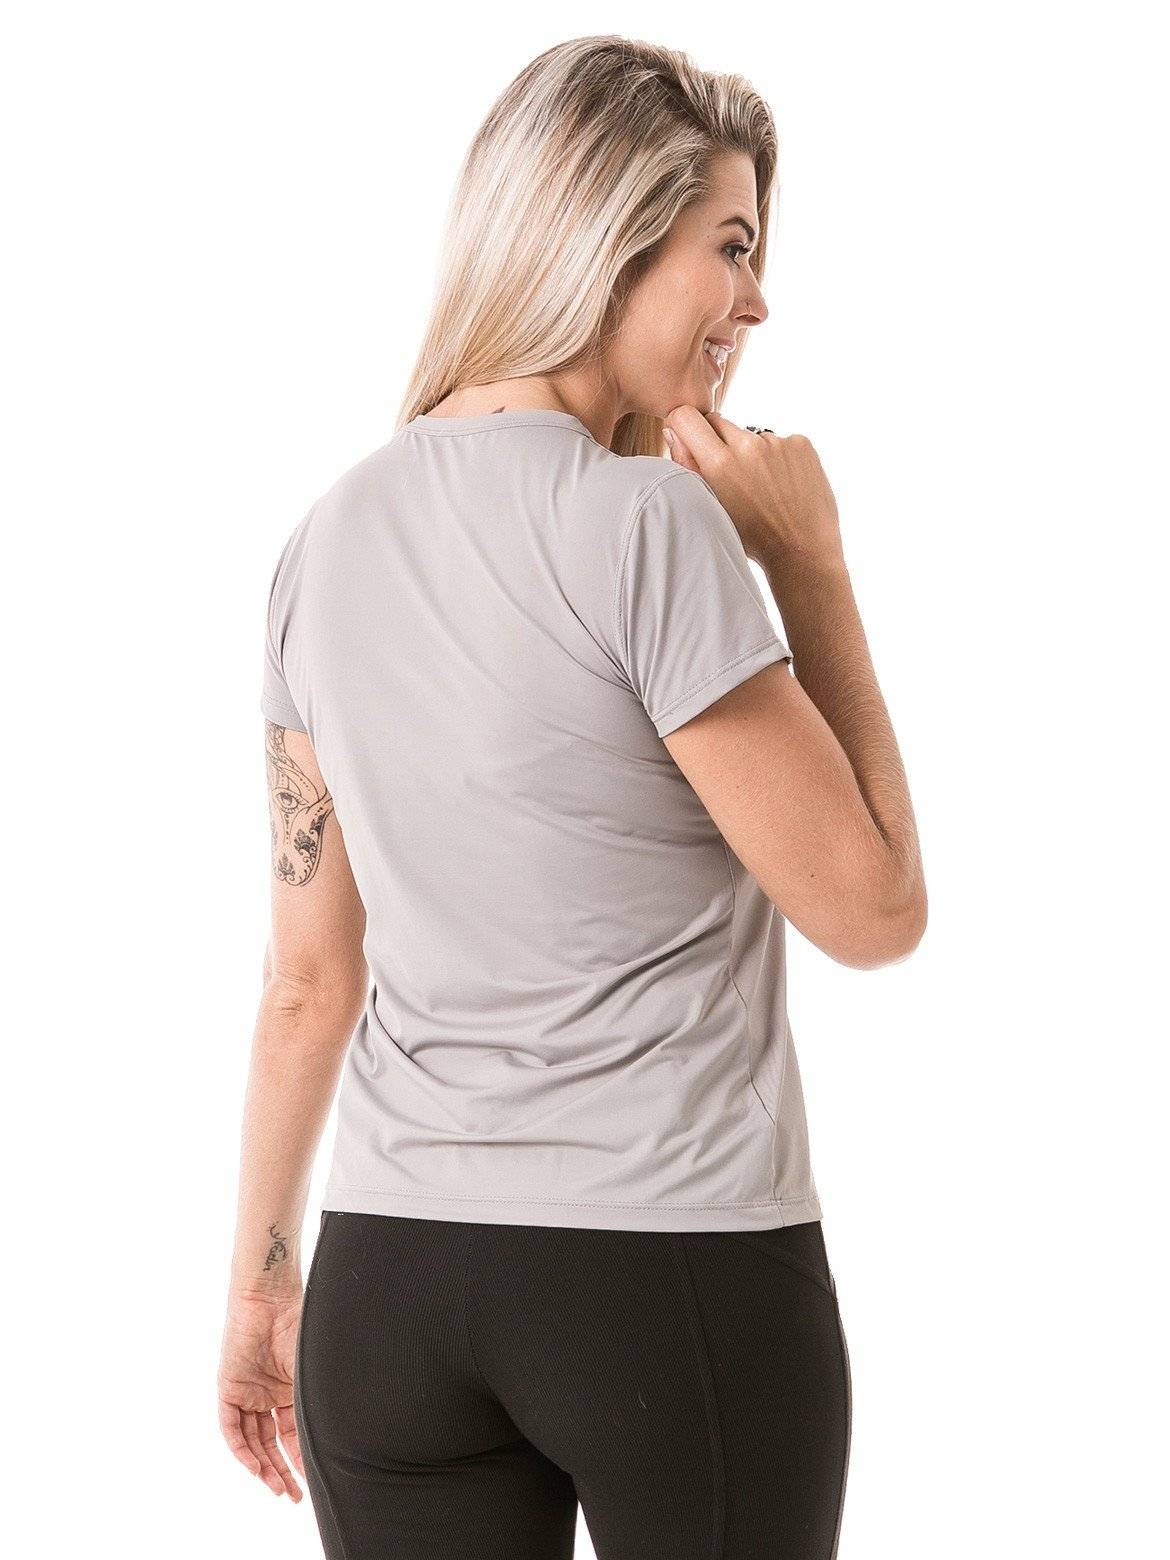 feminina t shirt curta ice cinza lateral b